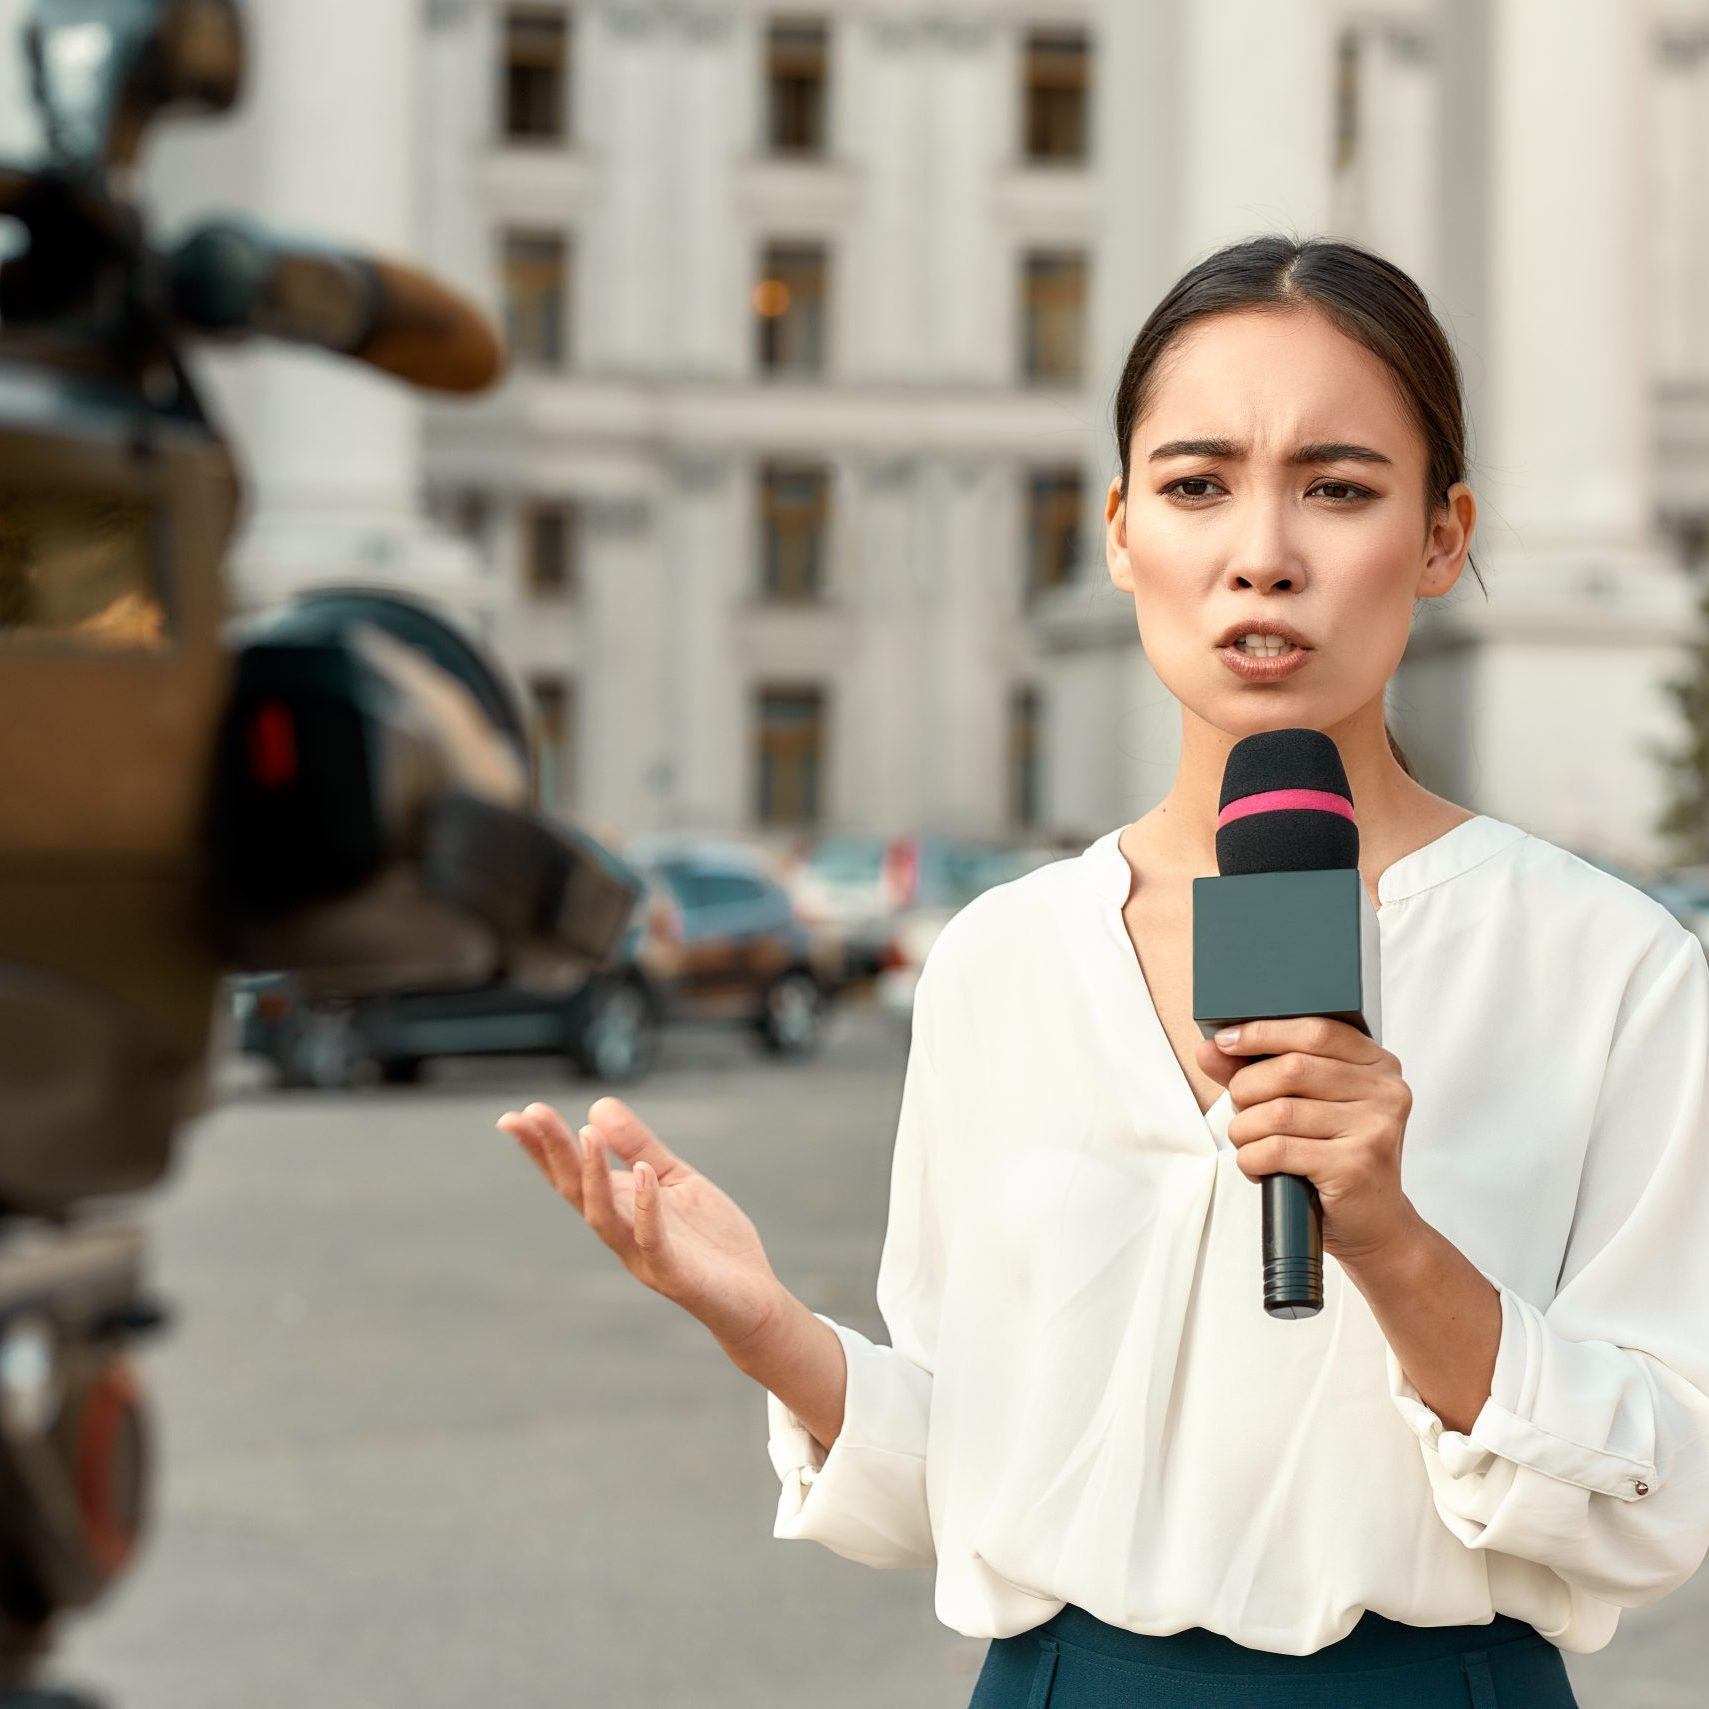 Cropped portrait of professional female reporter at work. Young woman standing on the street with a microphone in hand and smiling at camera. Horizontal shot. Selective focus on woman